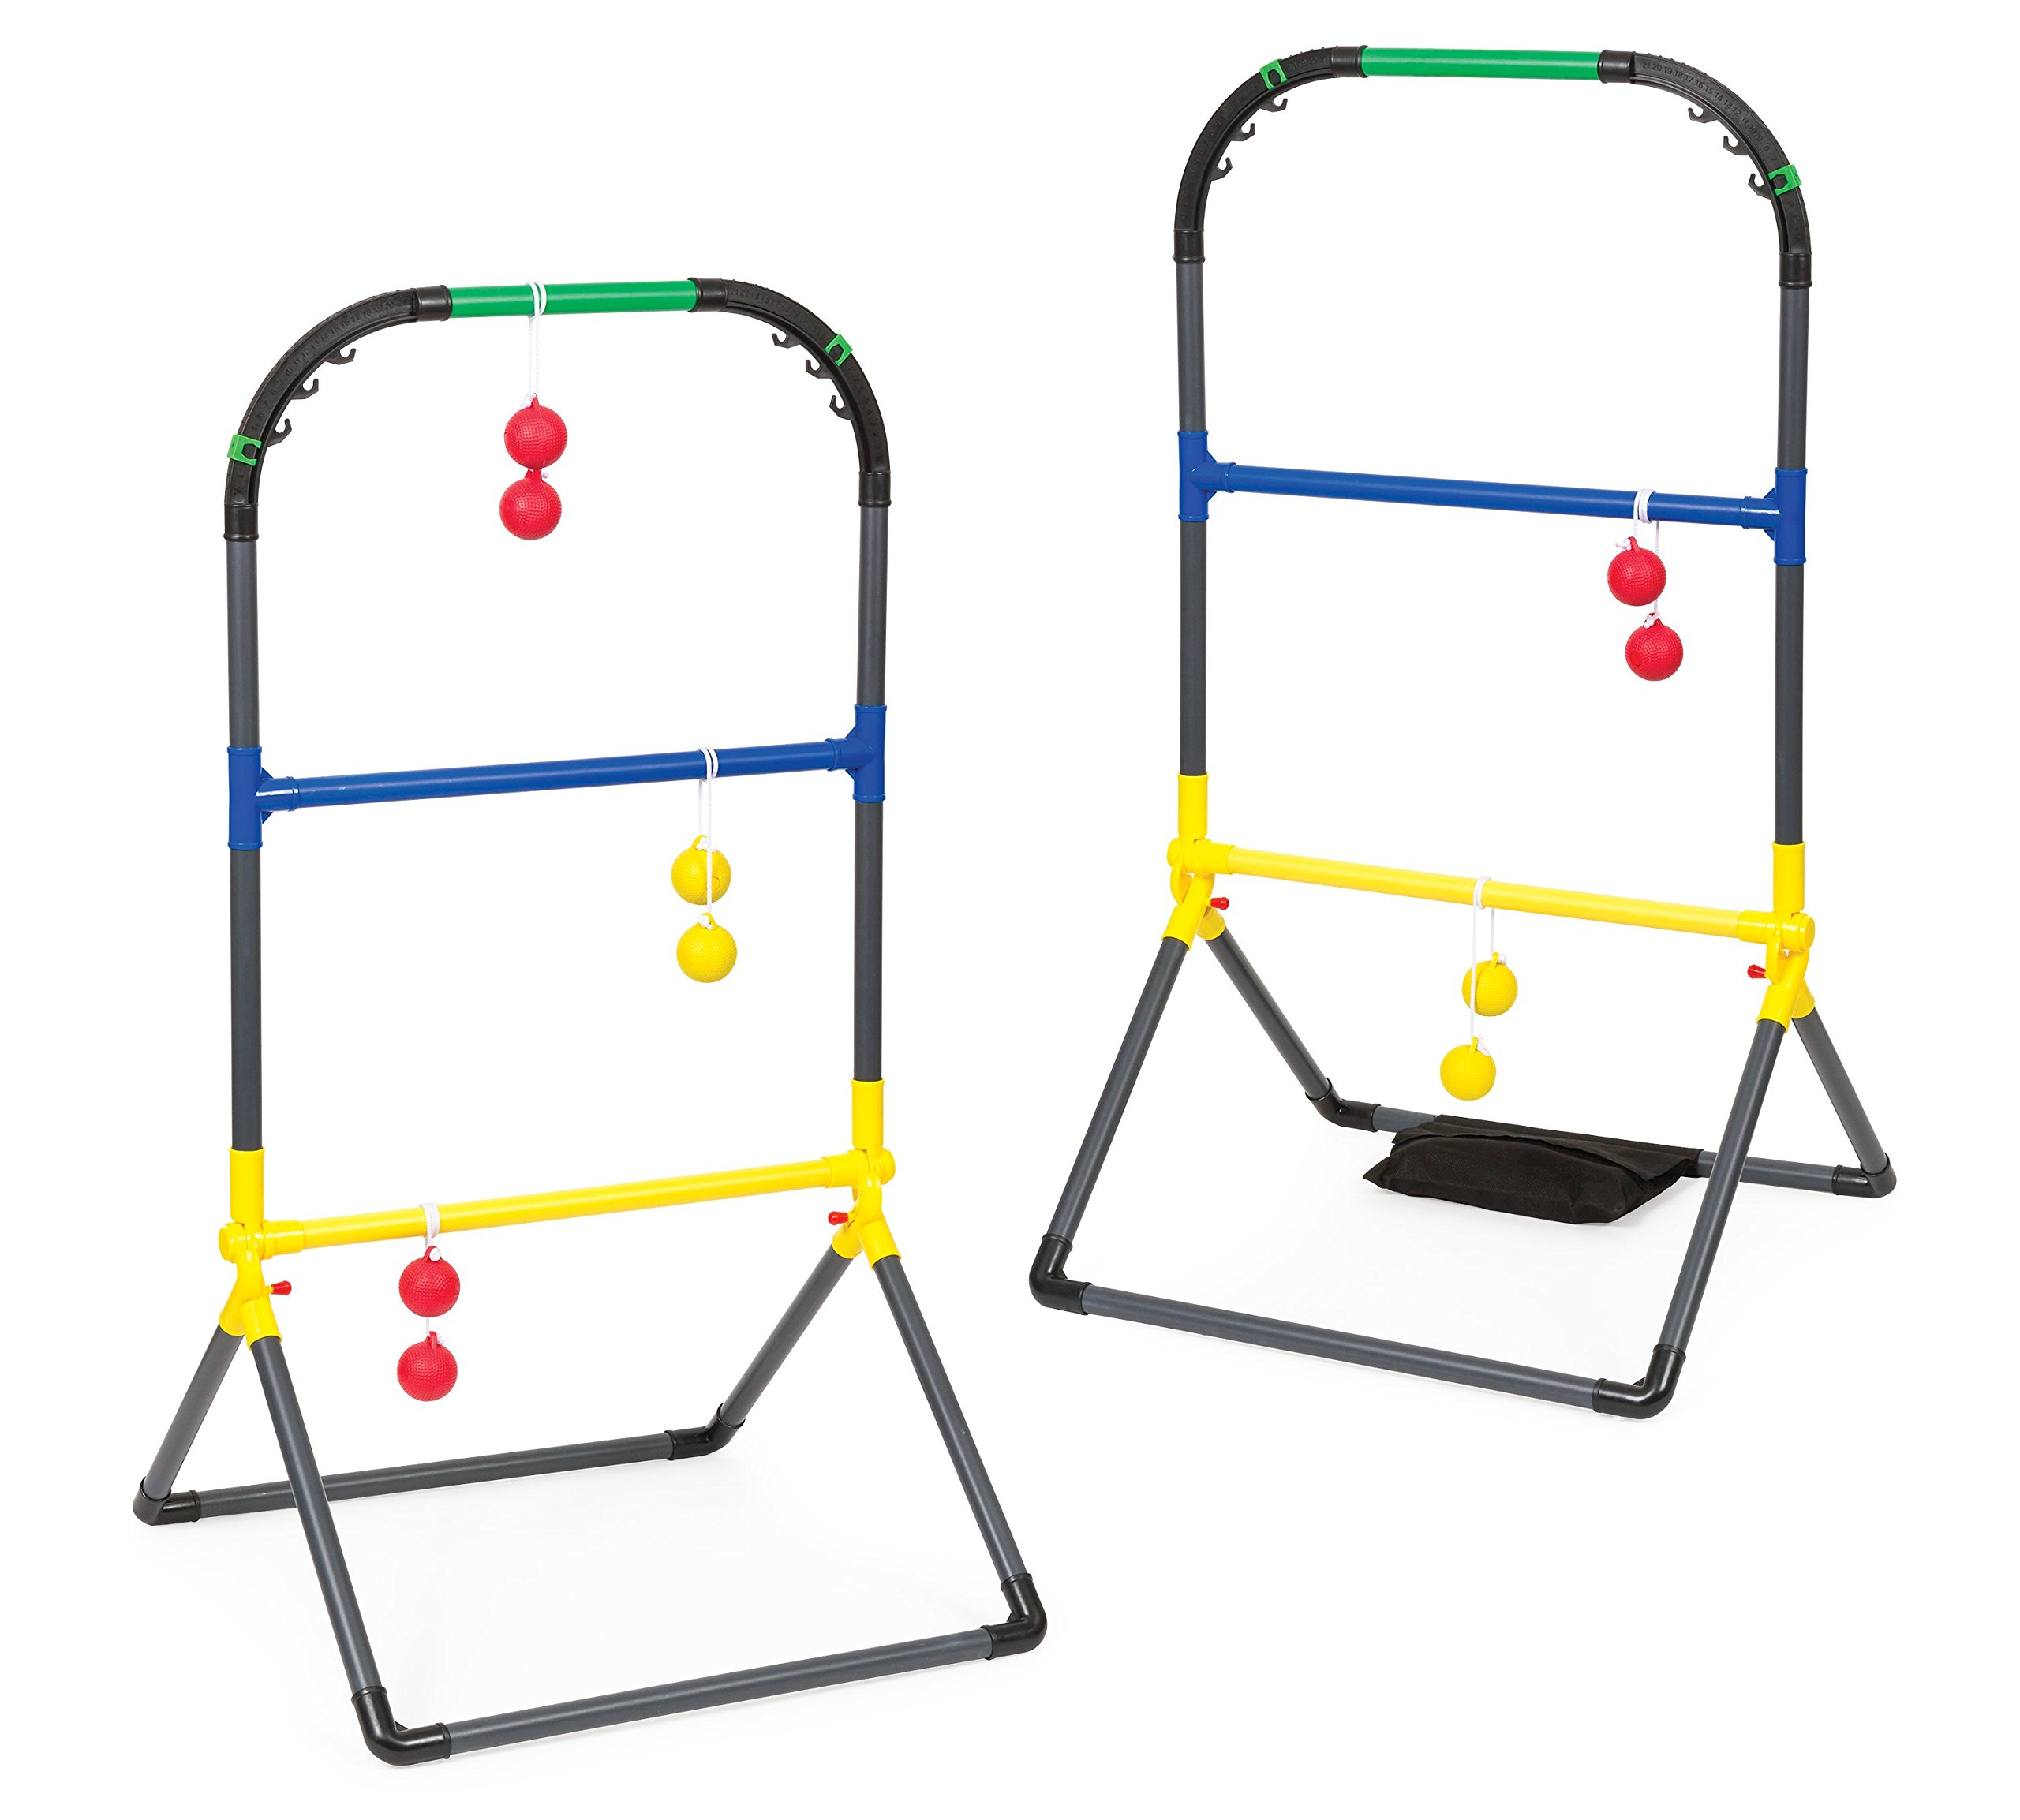 Go! Gater Foldable Ladderball Set